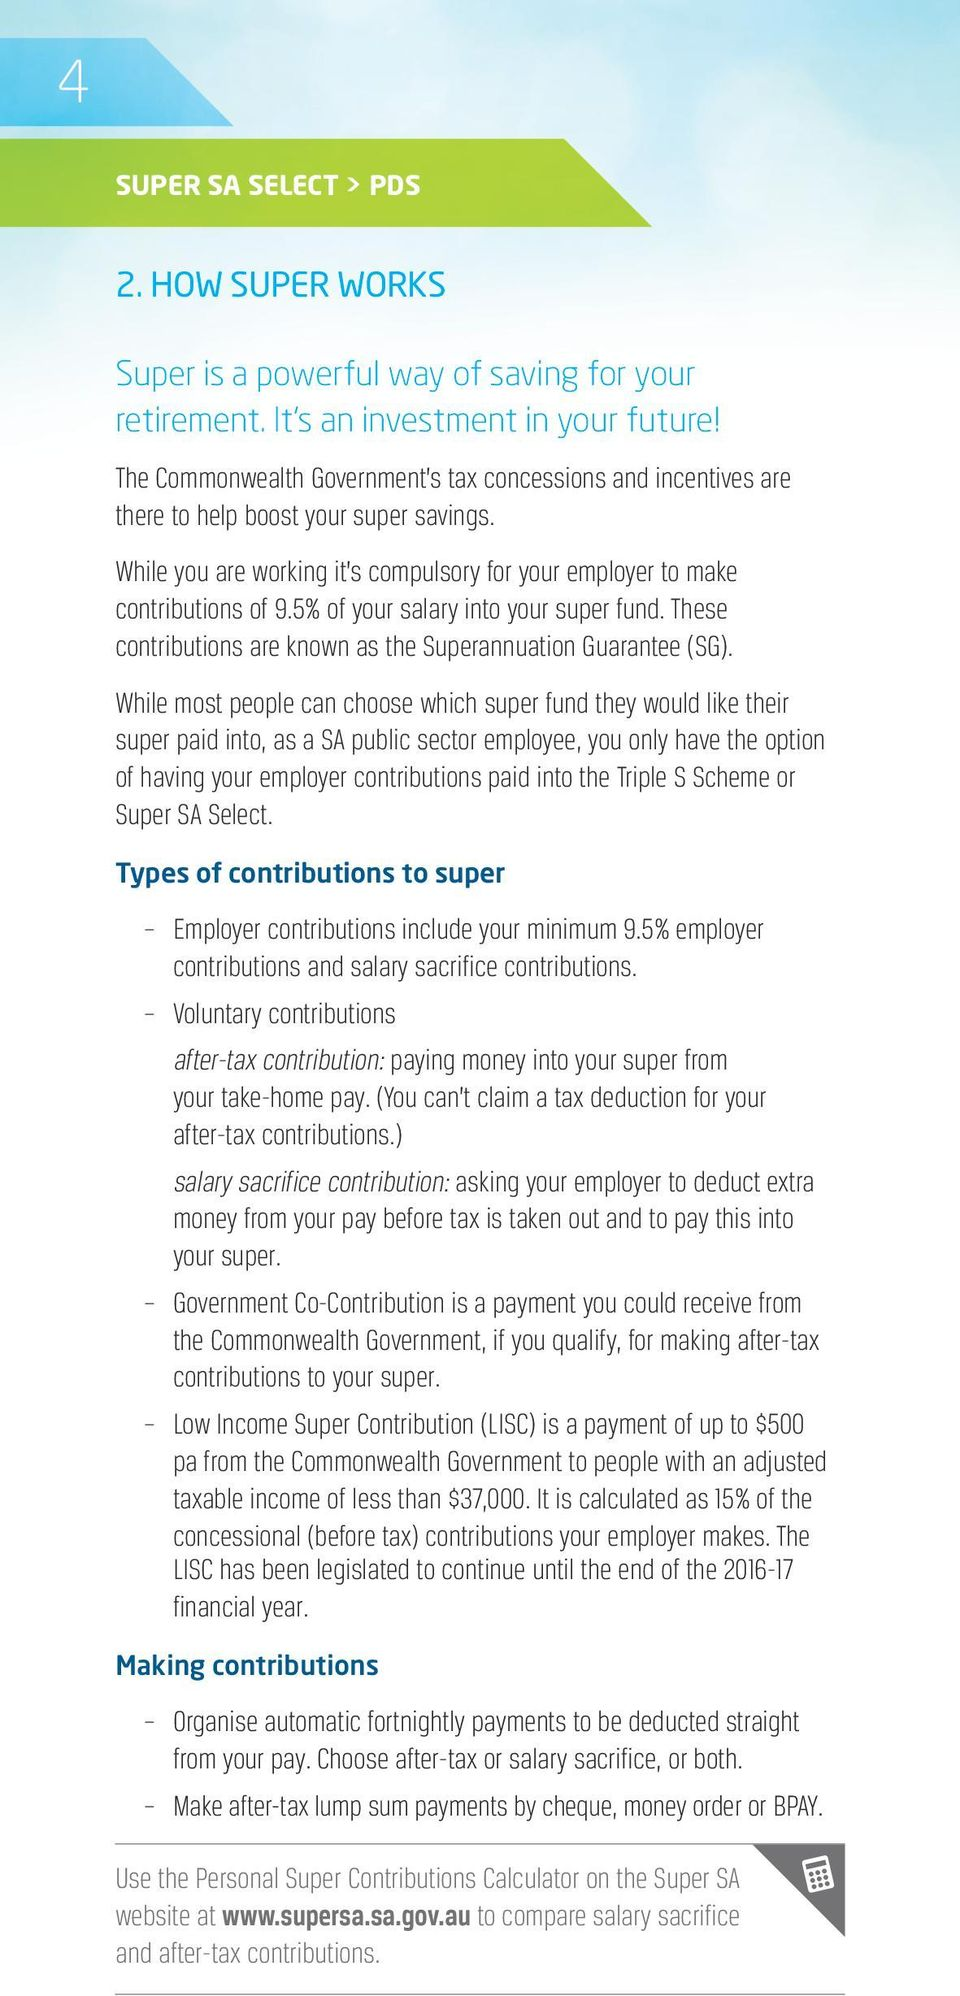 5% of your salary into your super fund. These contributions are known as the Superannuation Guarantee (SG).